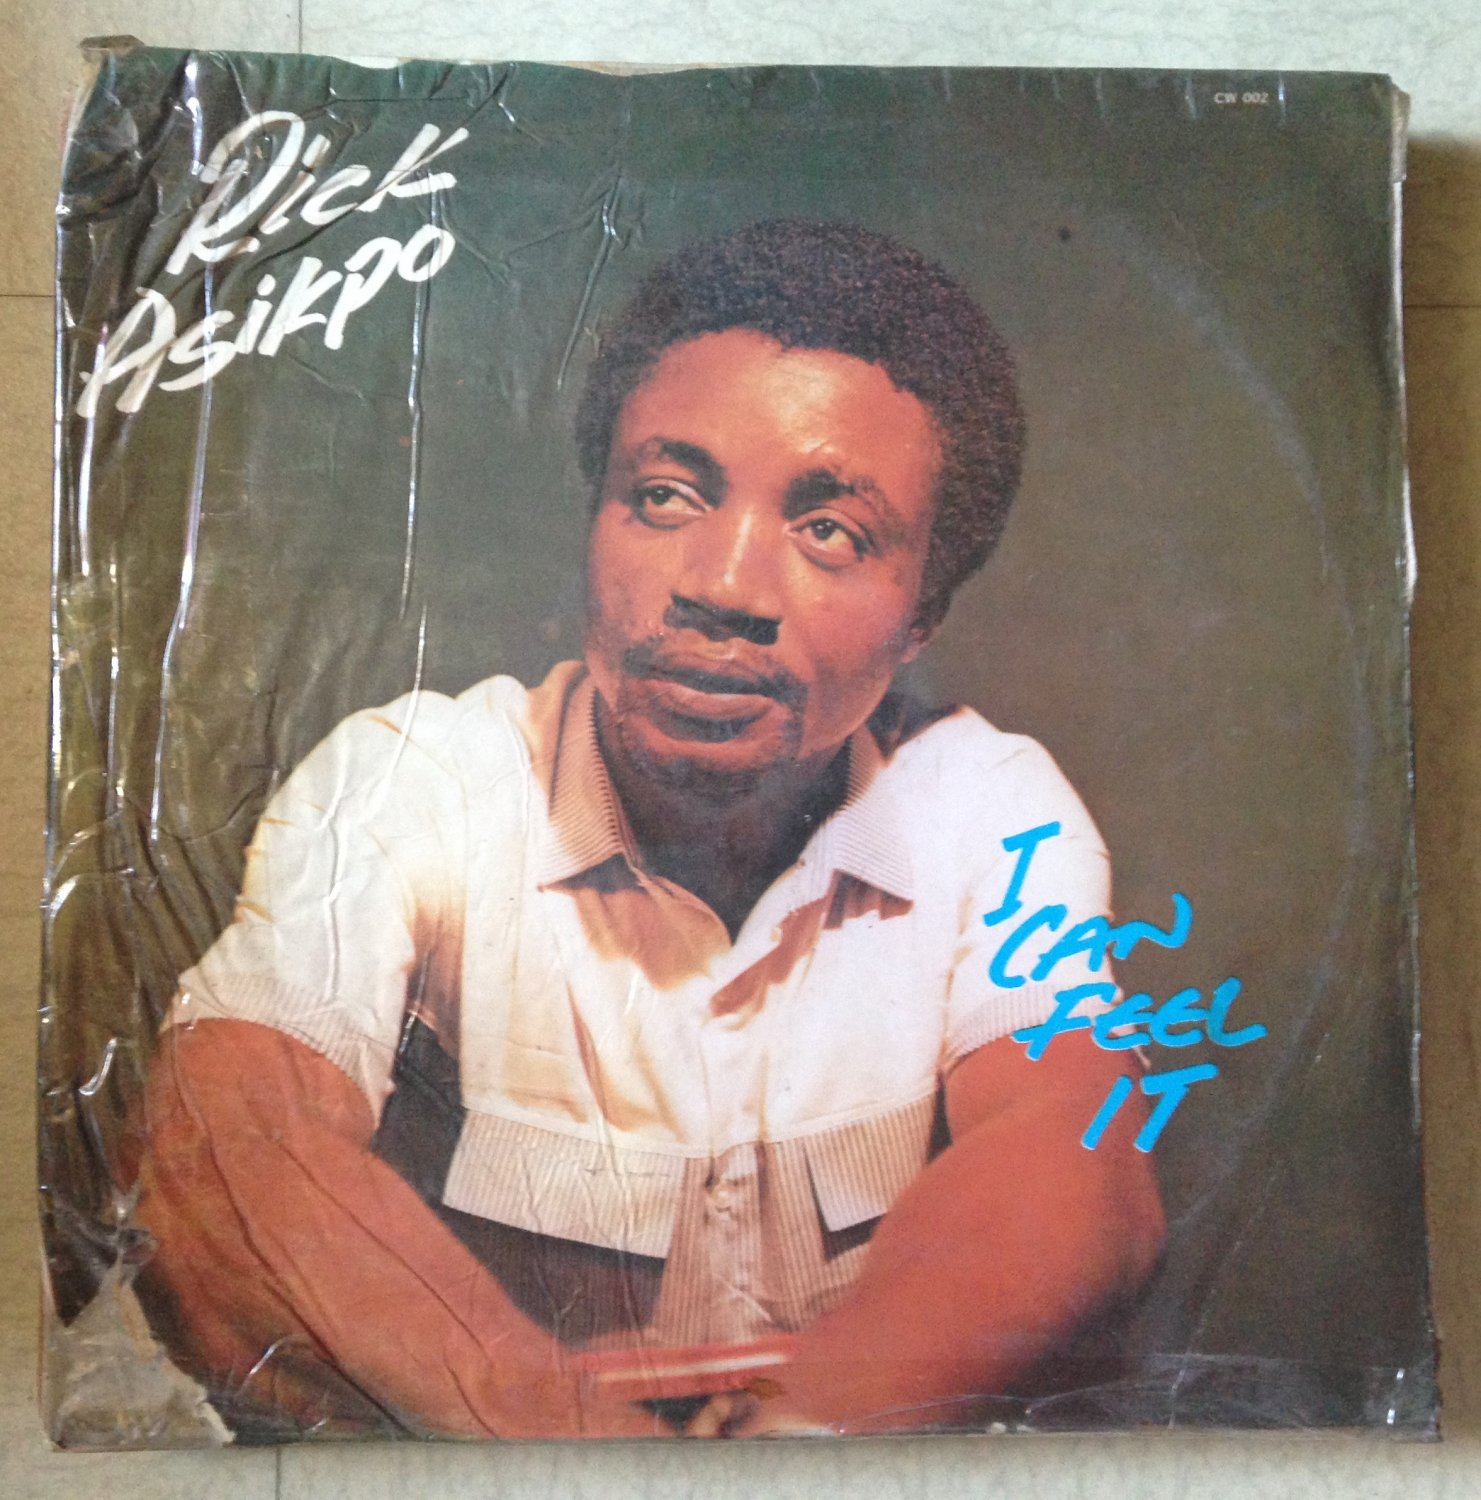 RICK ASIKPO LP i can feel it AFRO BOOGIE DISCO NIGERIA mp3 LISTEN